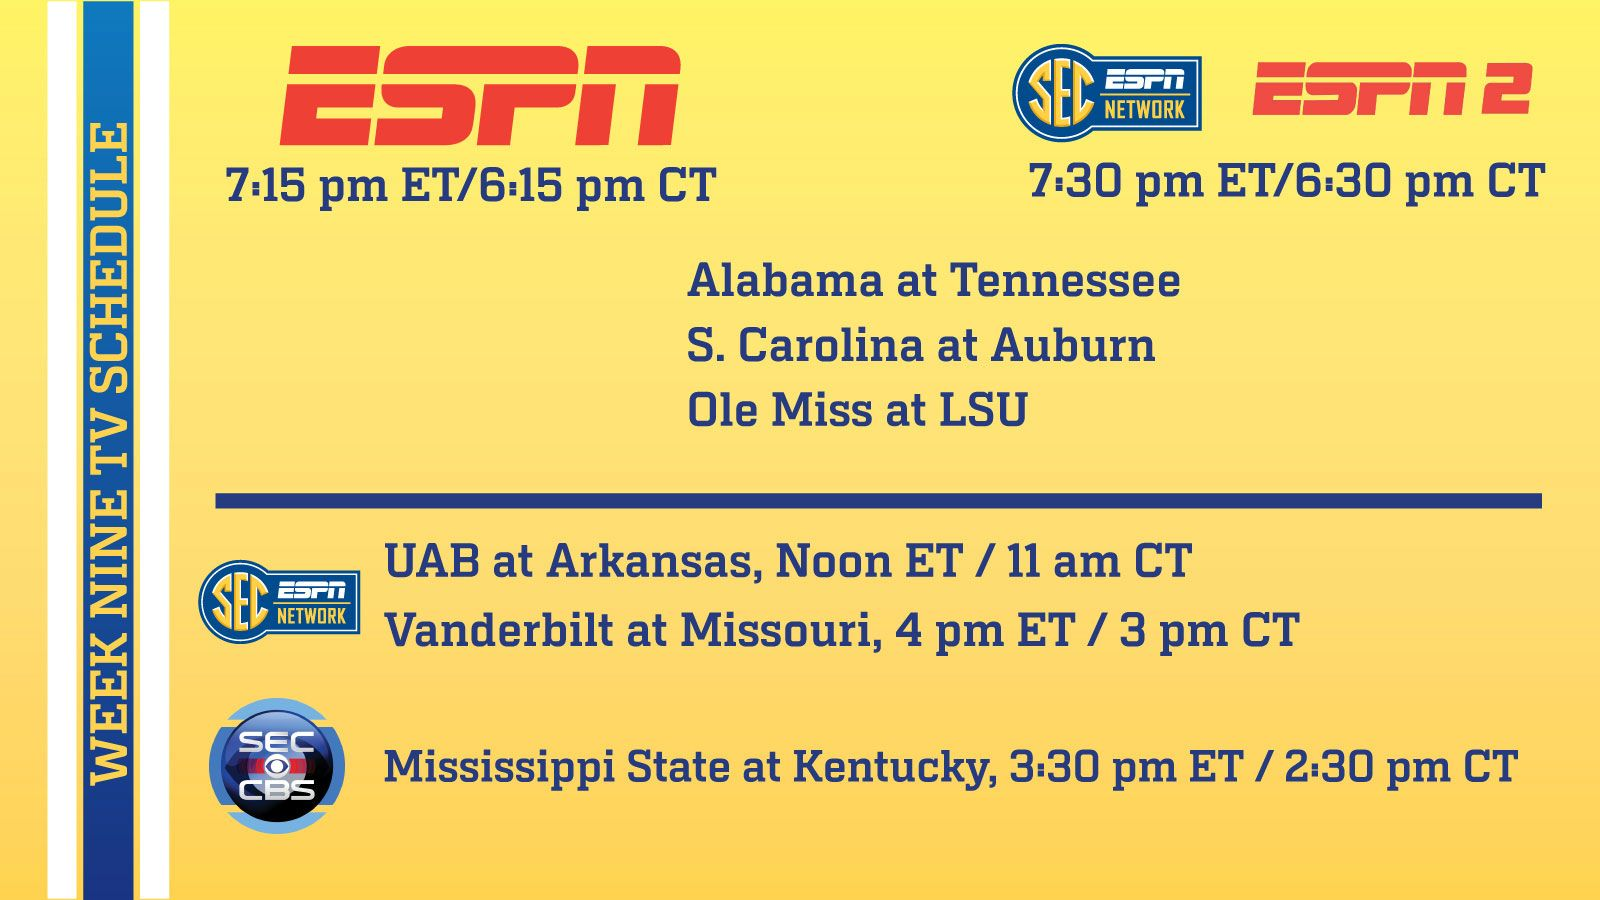 Saturday's SEC football TV and satellite radio schedule